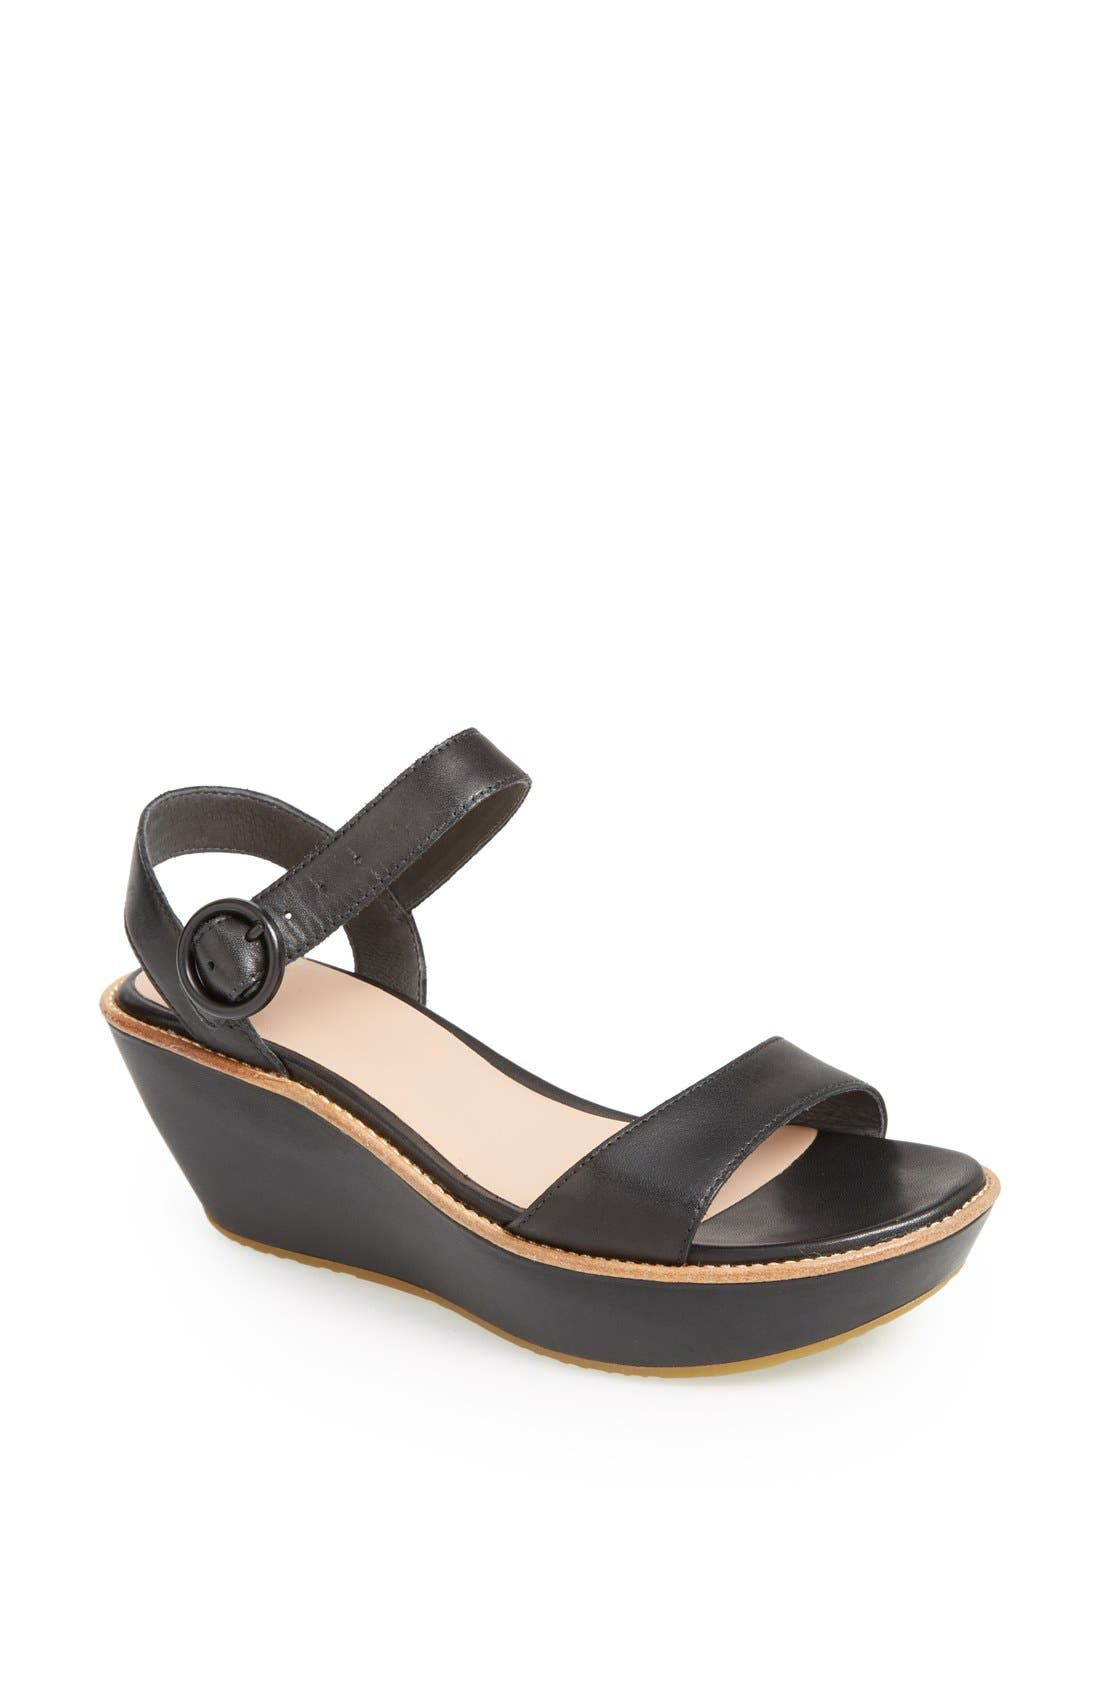 Alternate Image 1 Selected - Camper 'Damas' Wedge Sandal